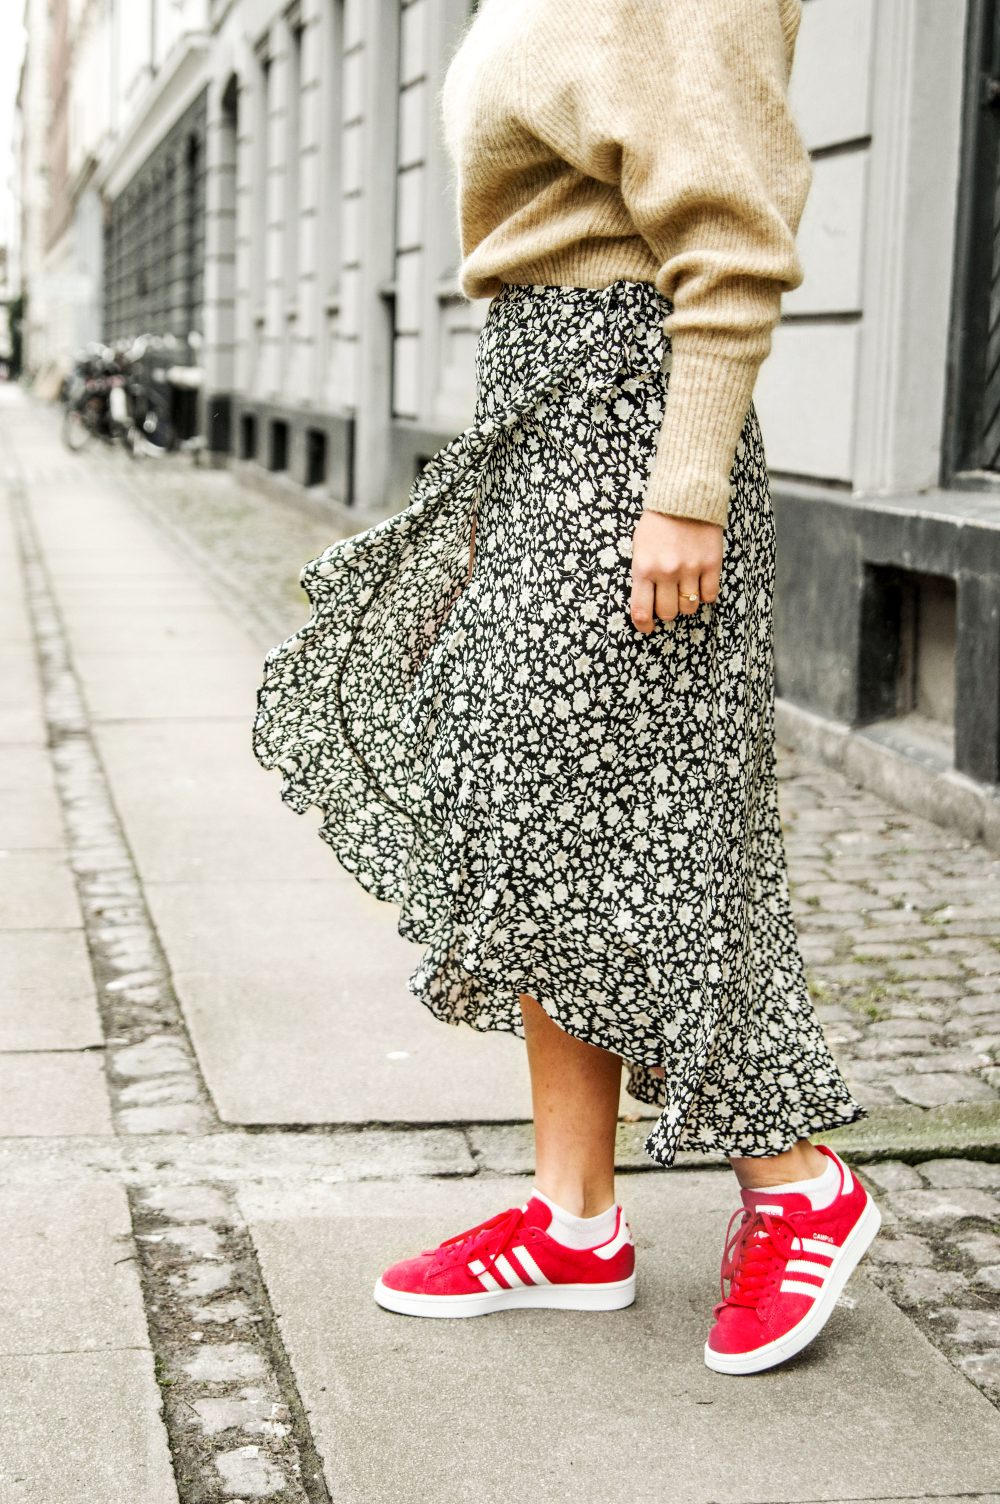 scandinavian fashion, plead skirt, sweater, winter fashion, minimlaist style 1